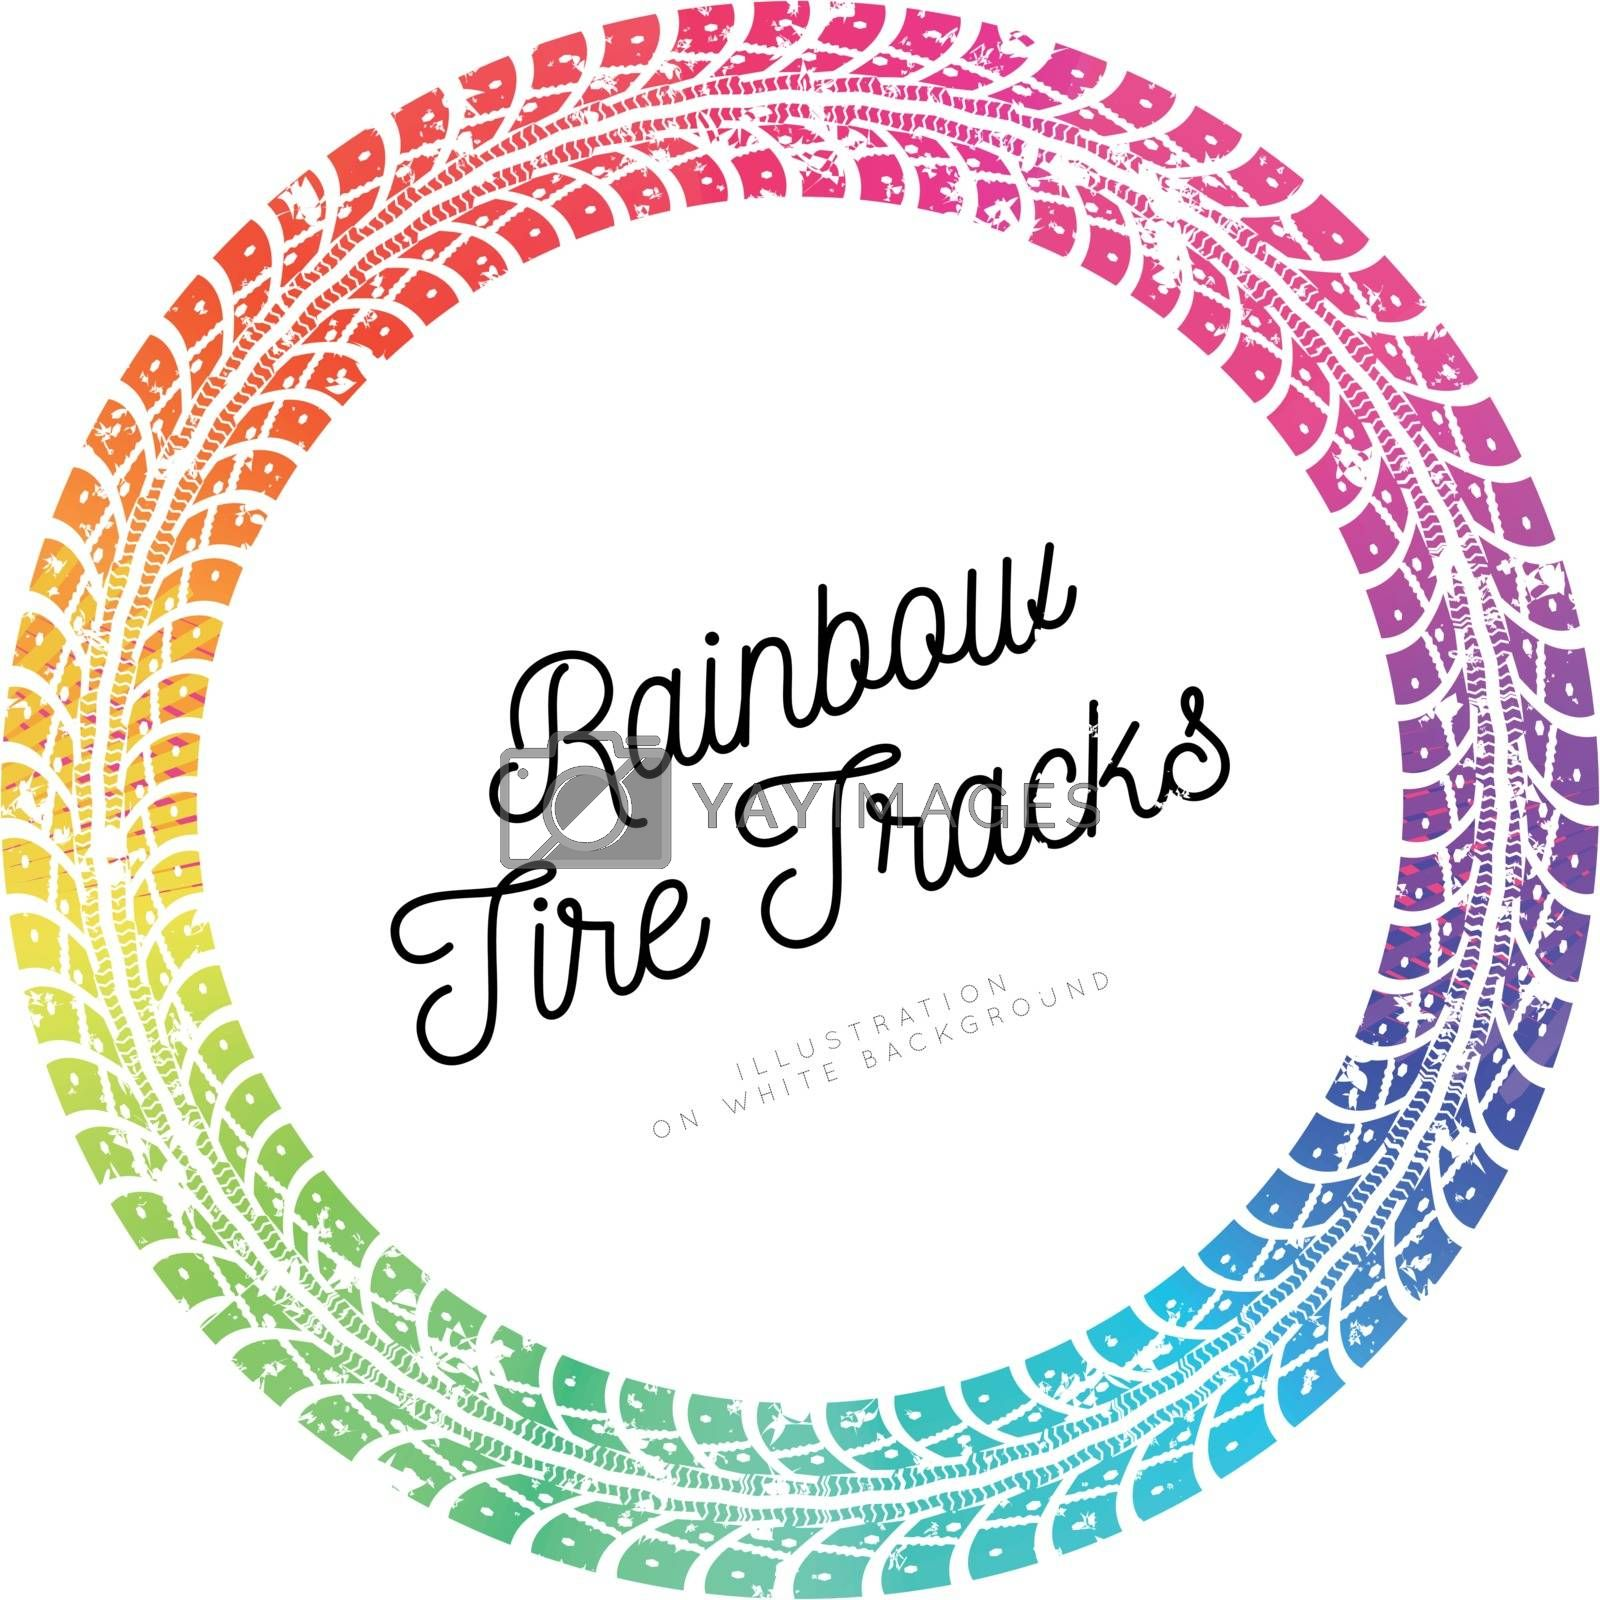 Colorful Tire tracks. Vector illustration on white background